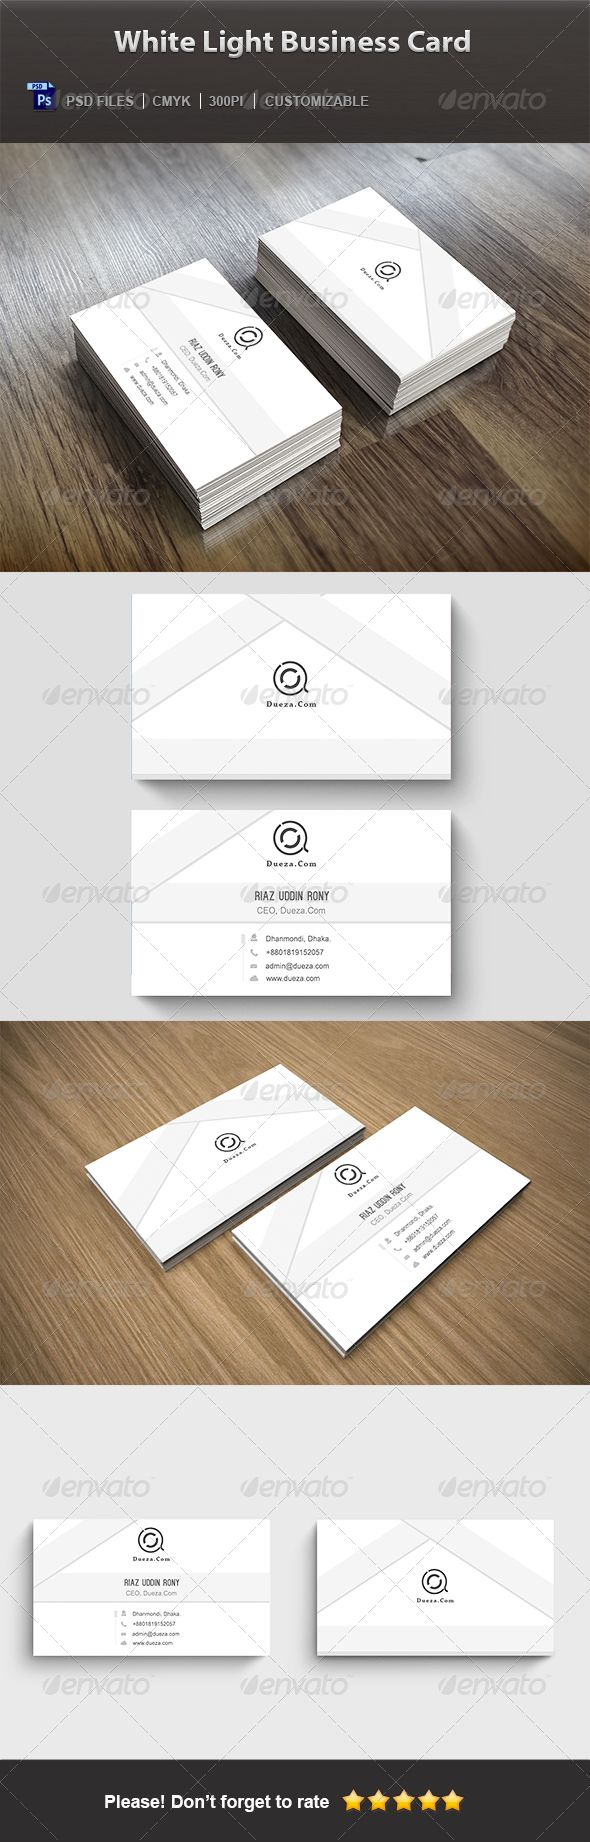 51 best blog for modern creative business card design images on creative business cards white light business card magicingreecefo Choice Image